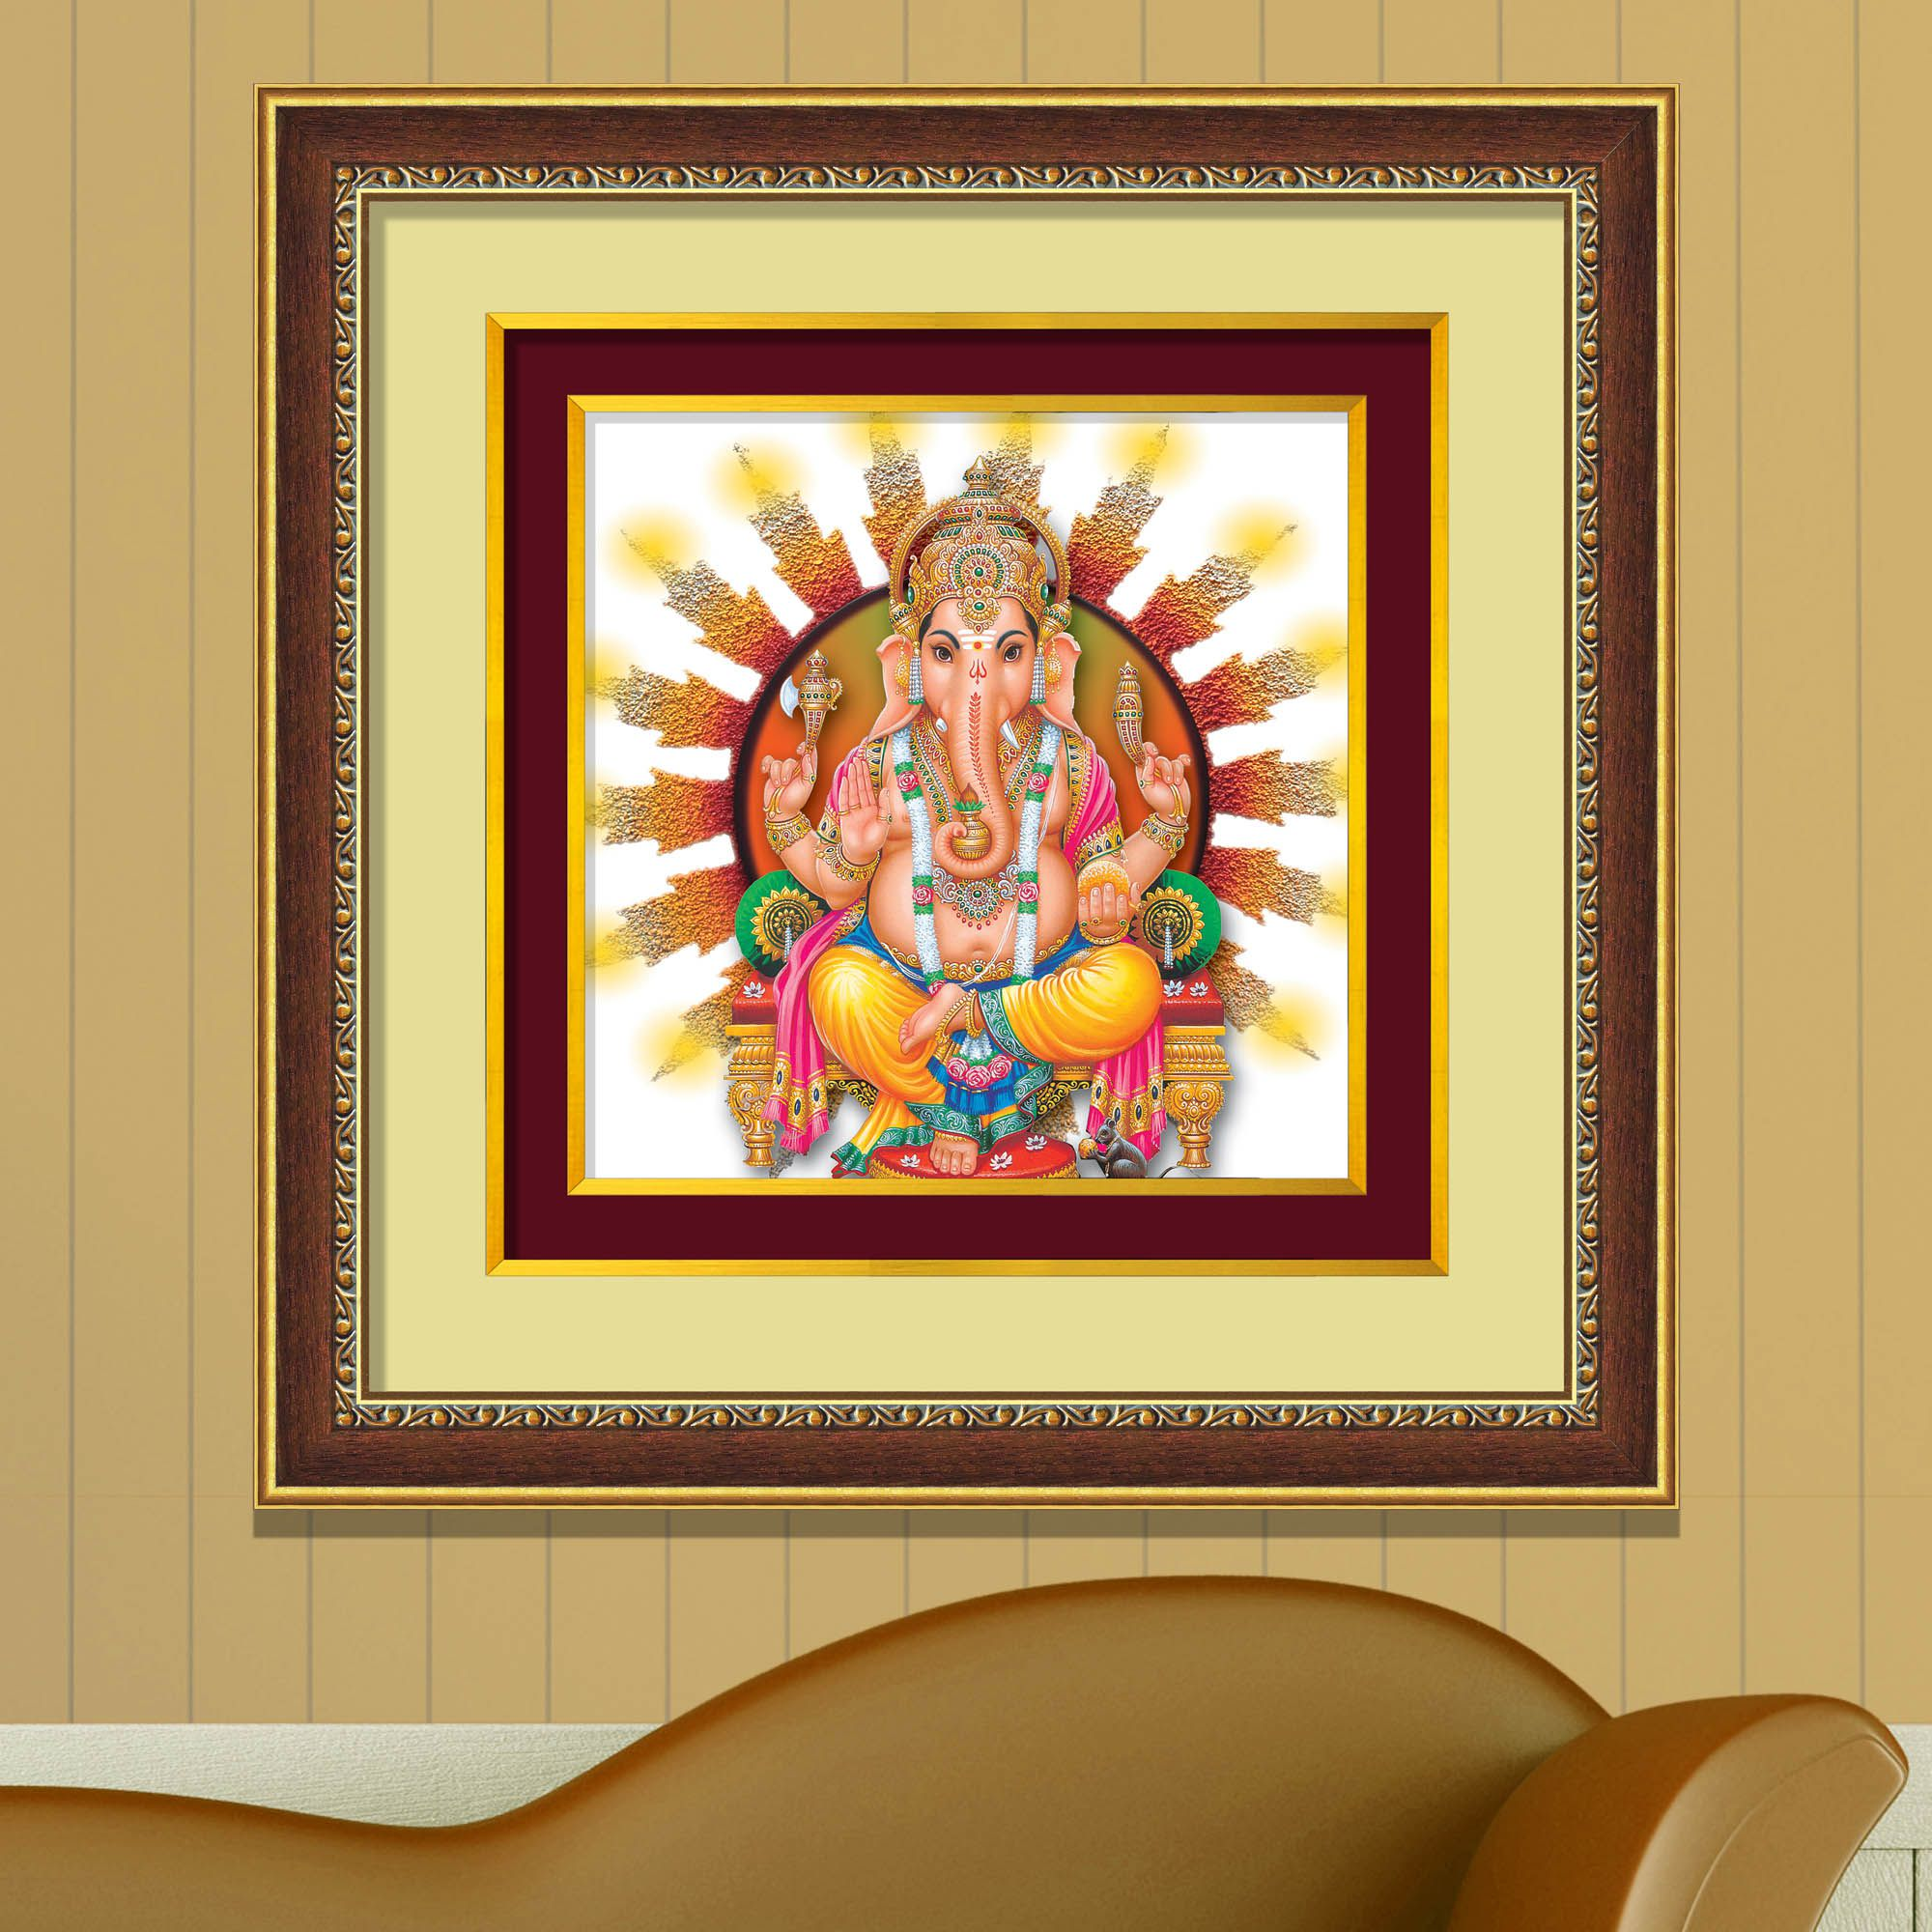 IMAGINATIONS Double Mounted Golden Beeding Digital Gift Art 18 inch X 18 inch Paper Painting With Frame